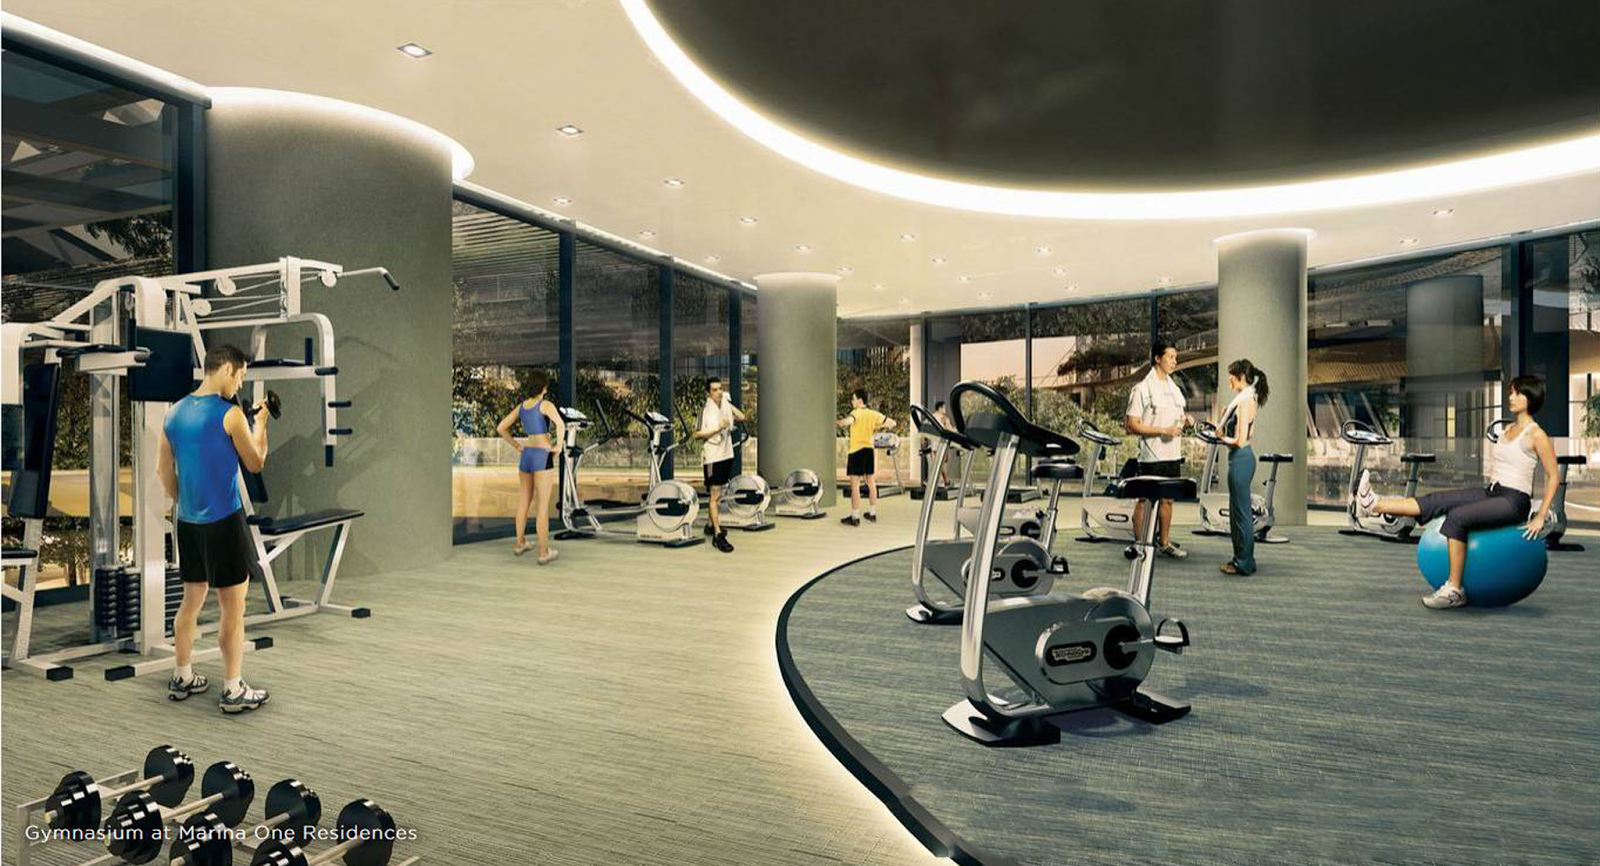 Marina One Facilities Gymnasium